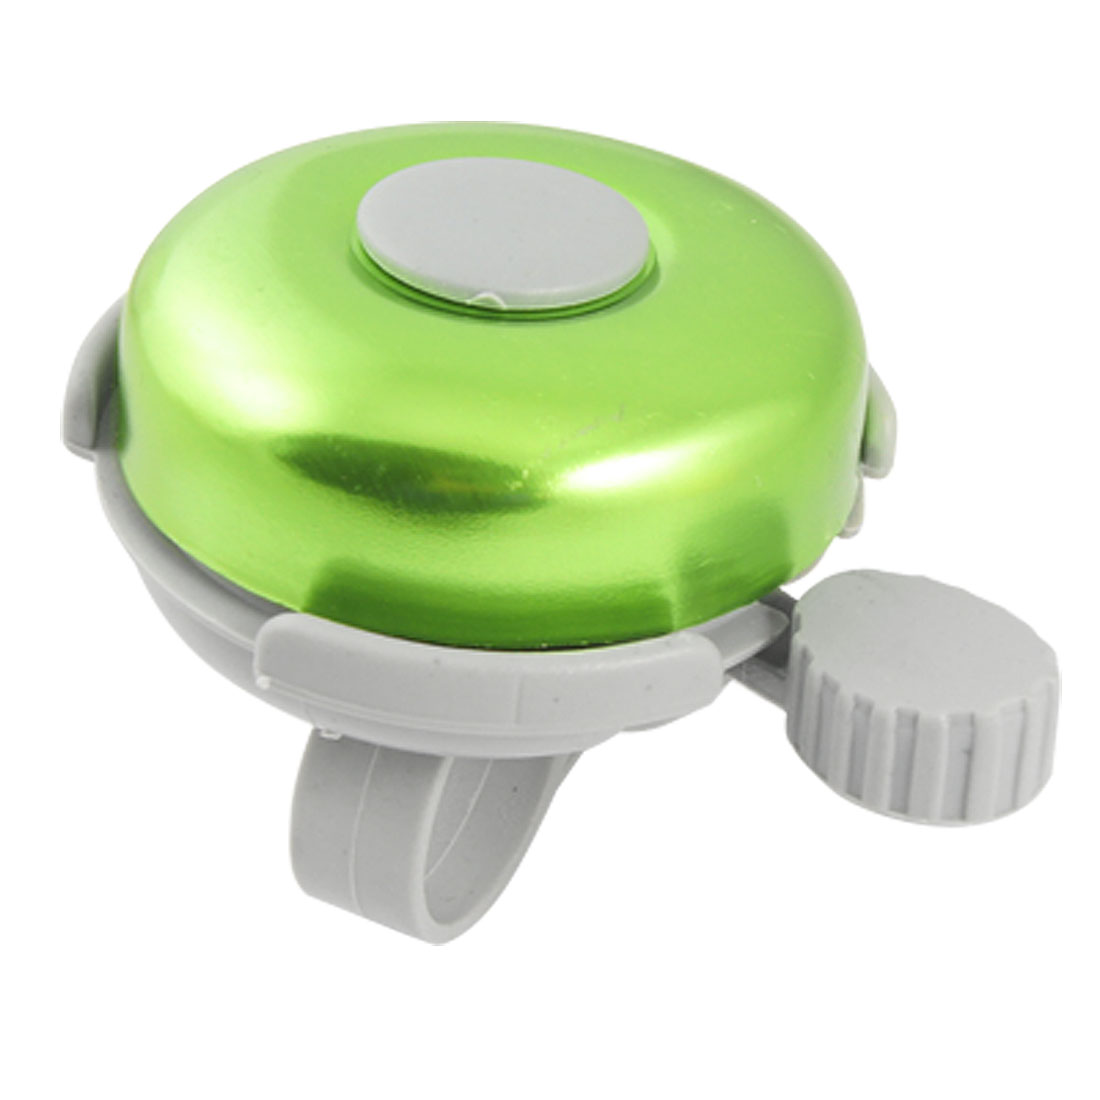 Bike Bicycle Bell Ring Round Green Gray Plastic Sound Alarm 2.4""